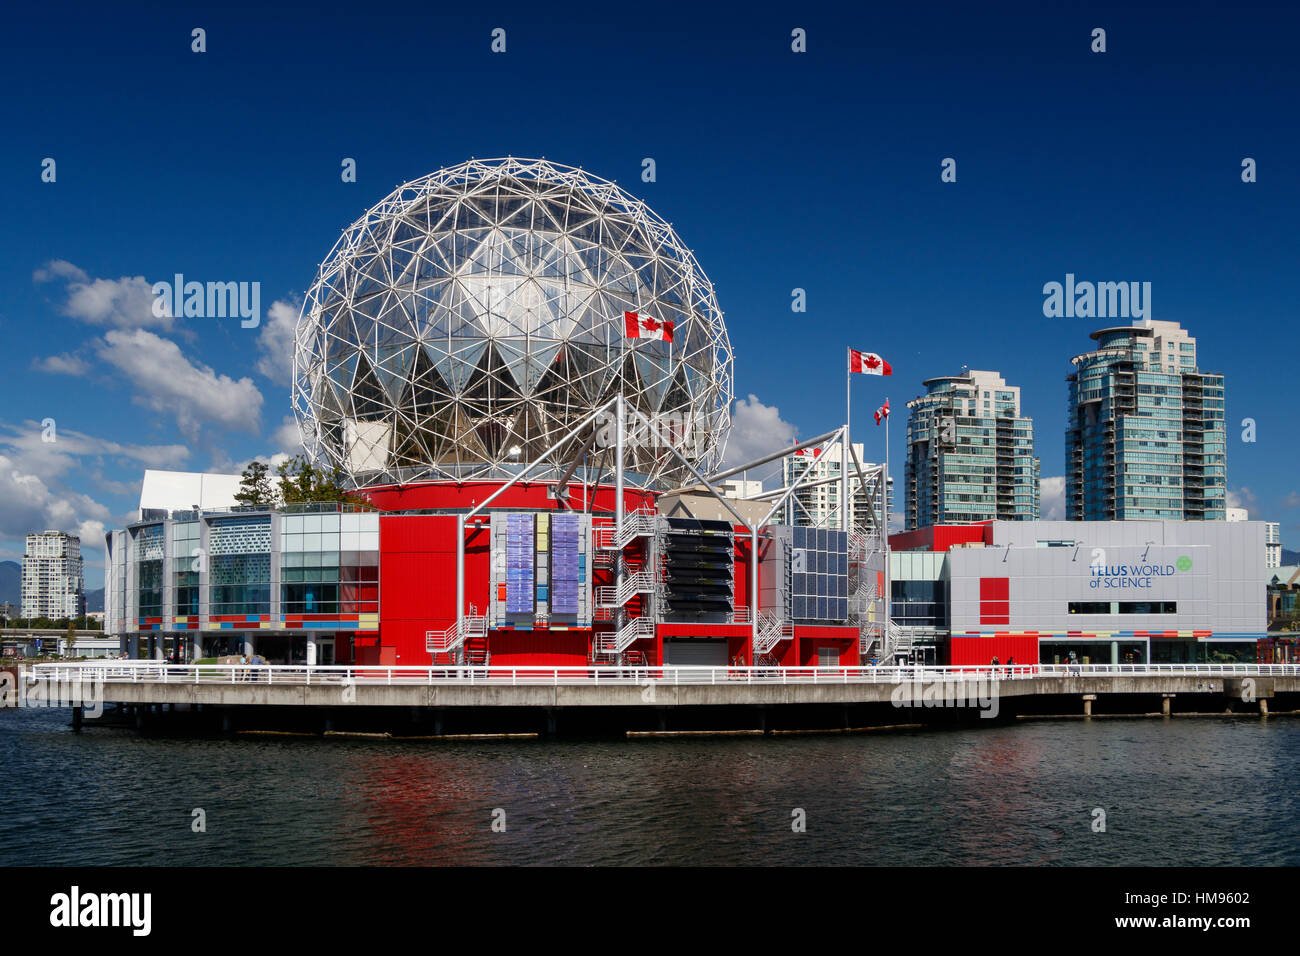 The Telus World of Science building on False Creek, Vancouver, British Columbia, Canada. The dome was added in 1985 - Stock Image